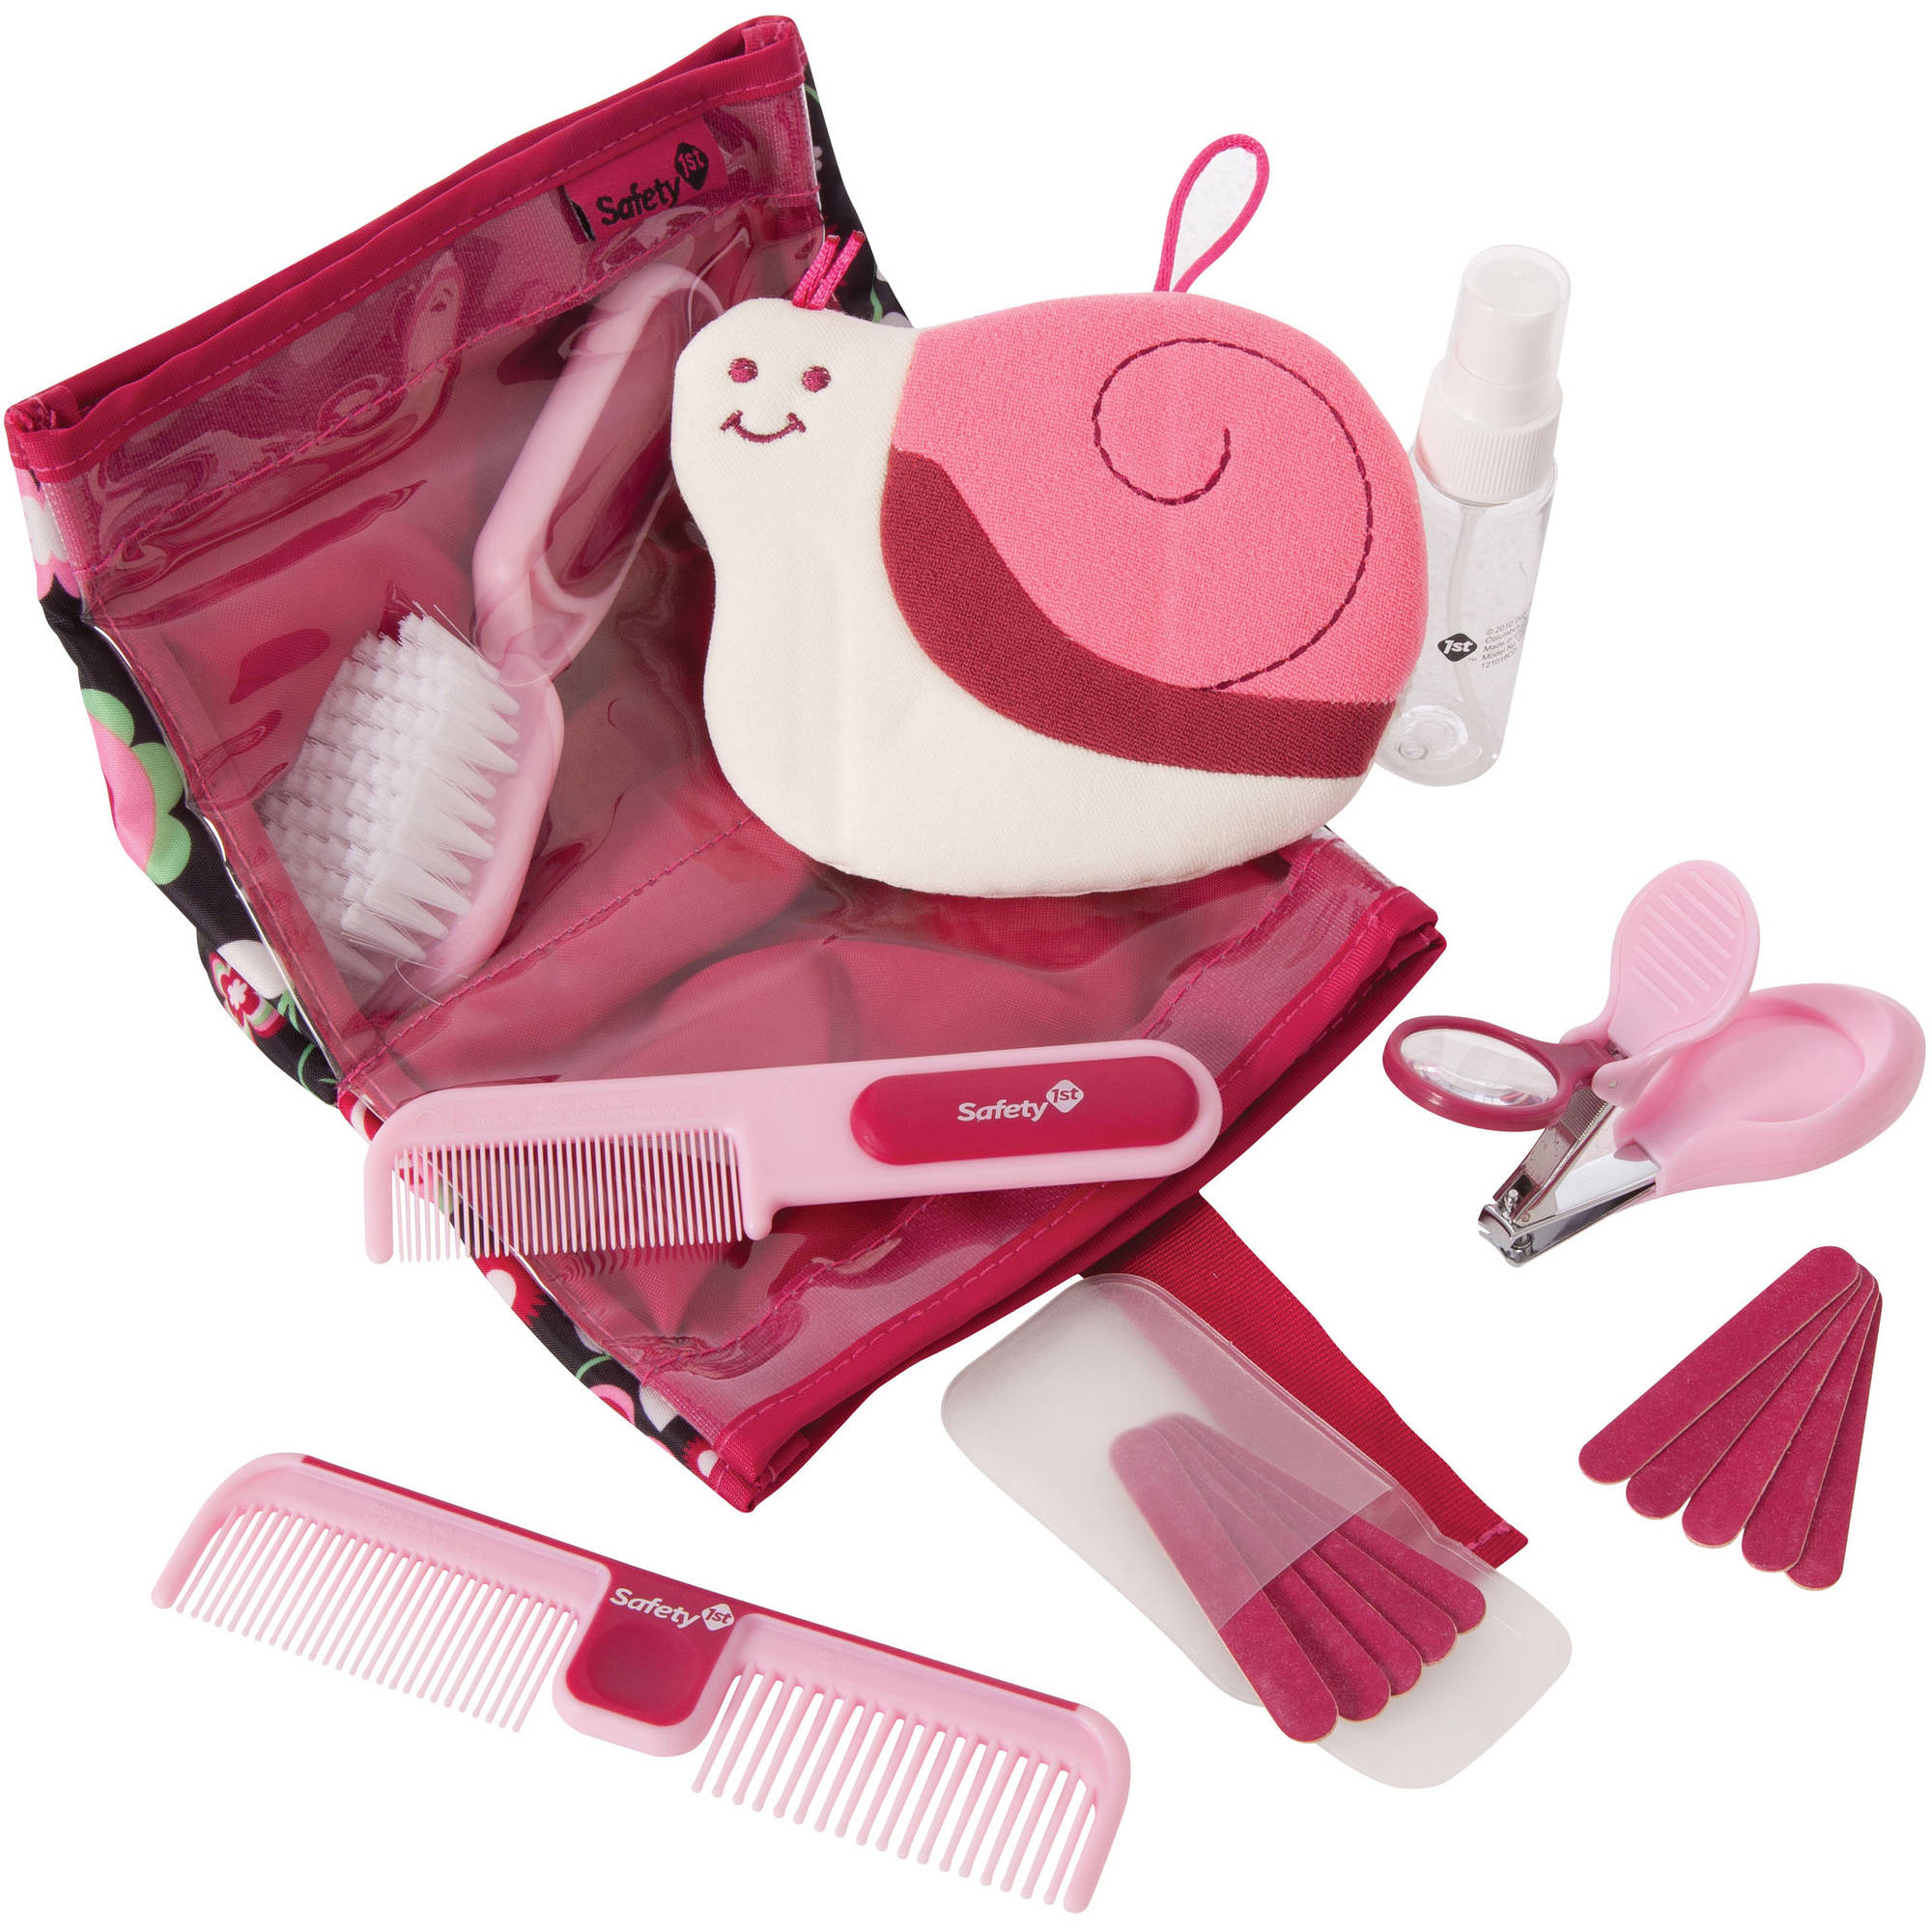 Safety 1st Complete Grooming Kit, Raspberry, 17 pc